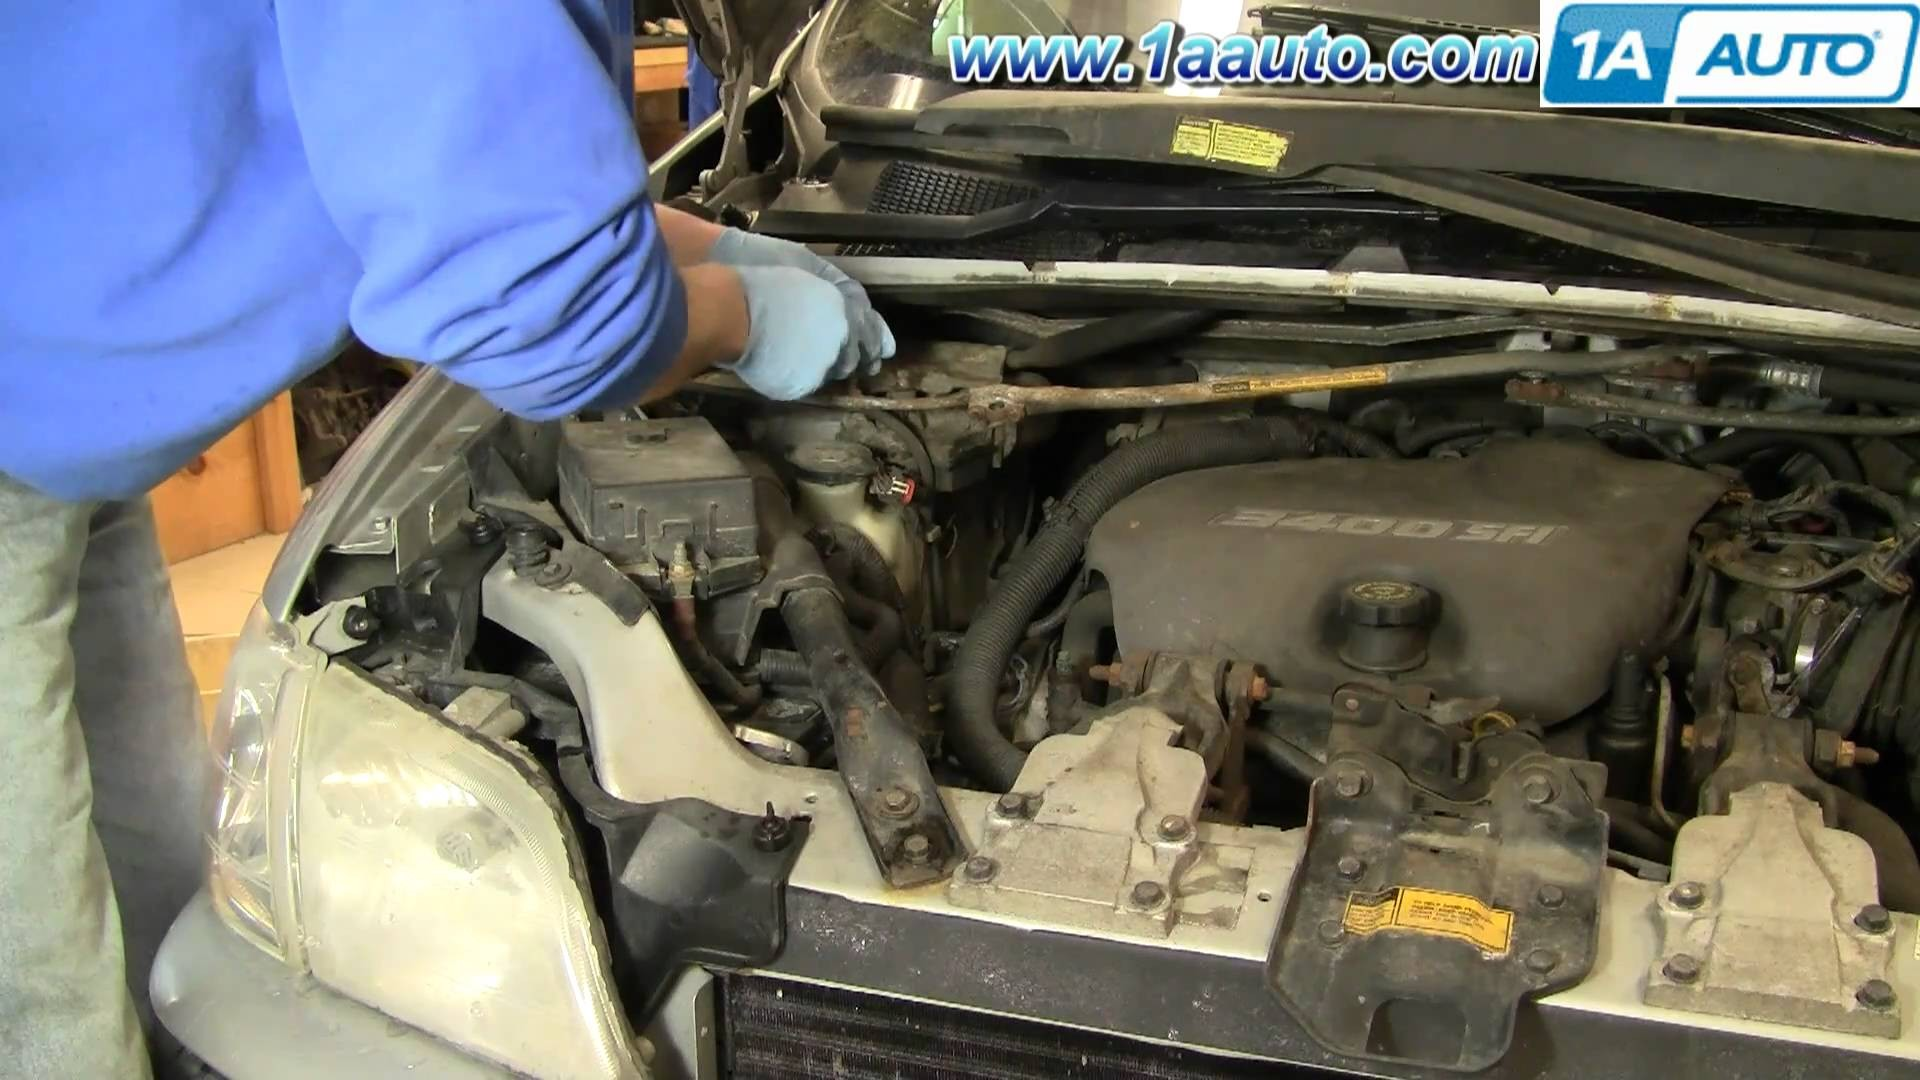 2004 chevy venture engine diagram how to install replace windshield wiper motor chevy venture pontiac of 2004 chevy venture engine diagram 2004 chevy venture engine diagram how to install replace windshield